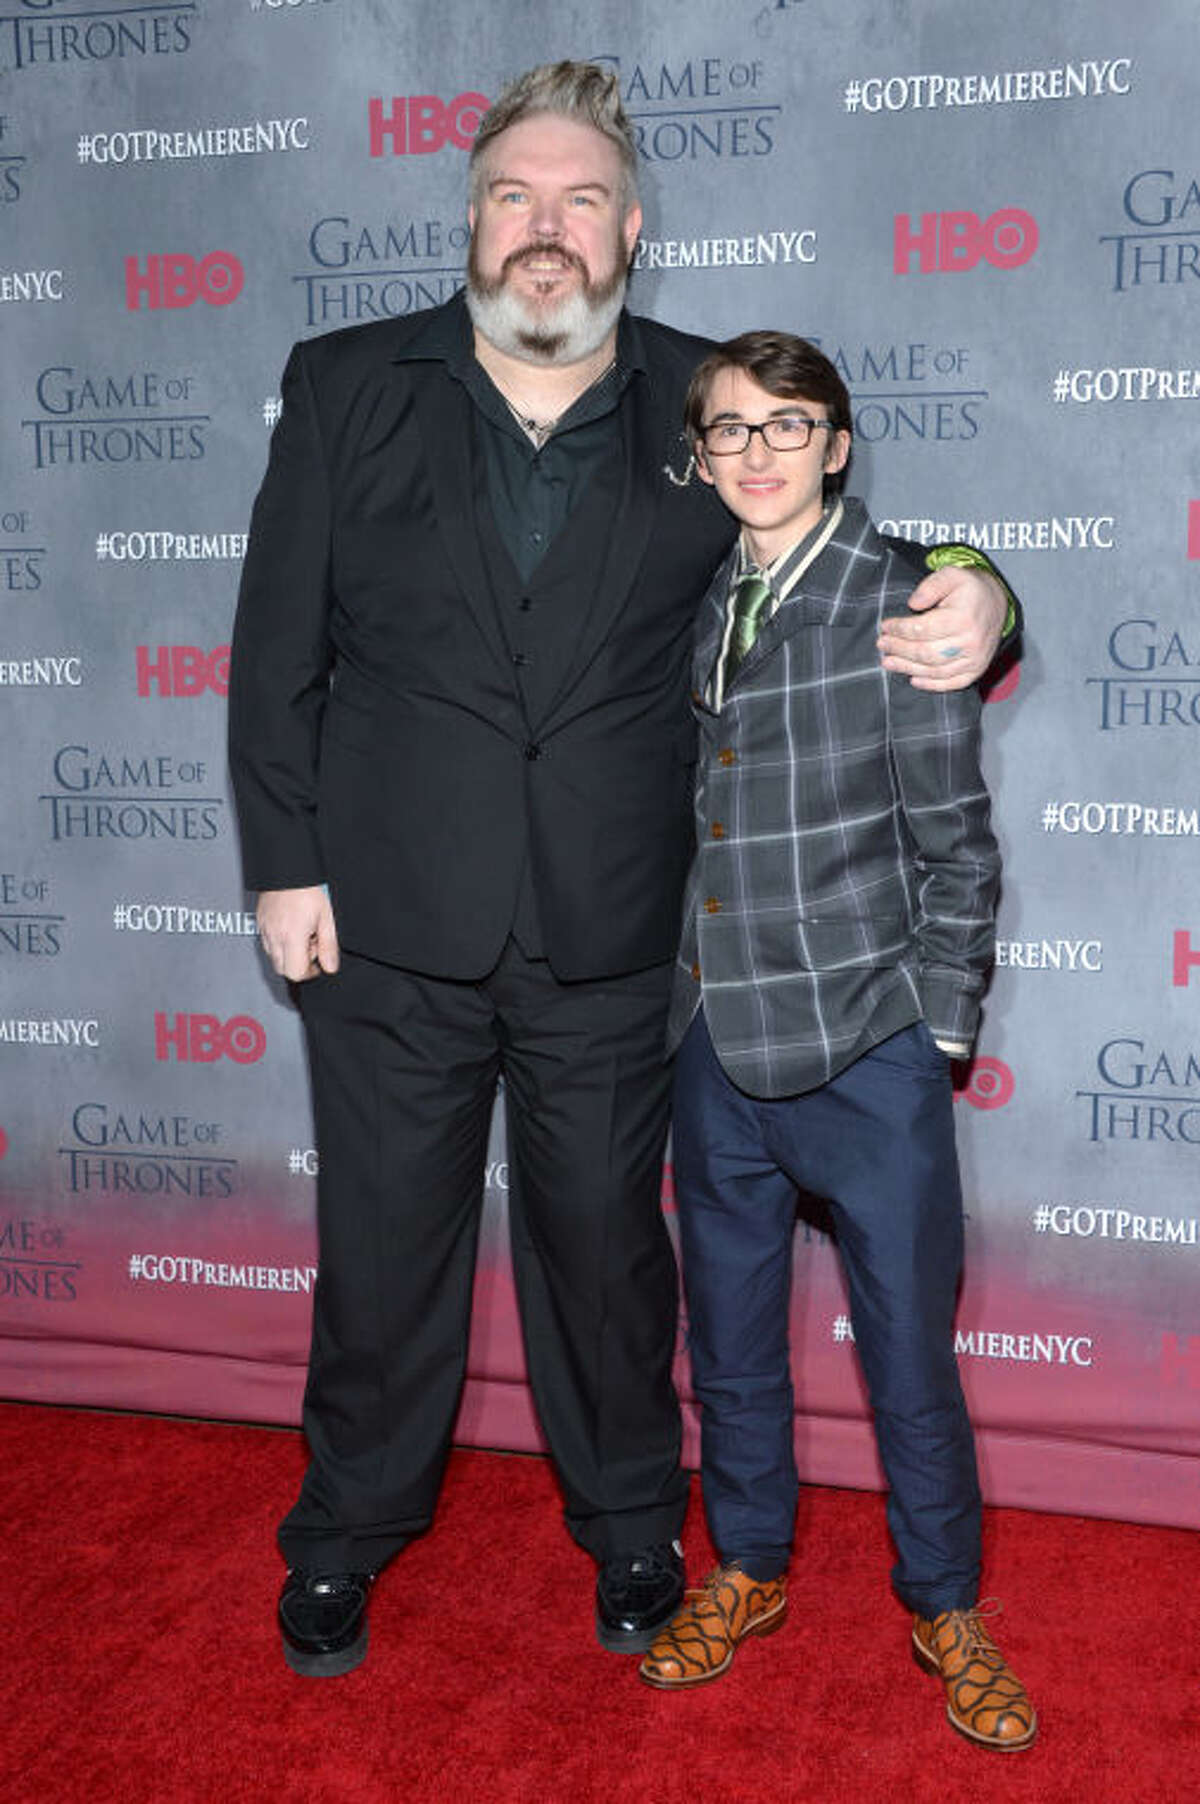 """Kristian Nairn and Isaac Hempstead Wright arrive at New York Premiere of """"Game of Thrones"""" Fourth Season on Tuesday, March 18, 2014, in New York. (Photo by Evan Agostini/Invision/AP)"""